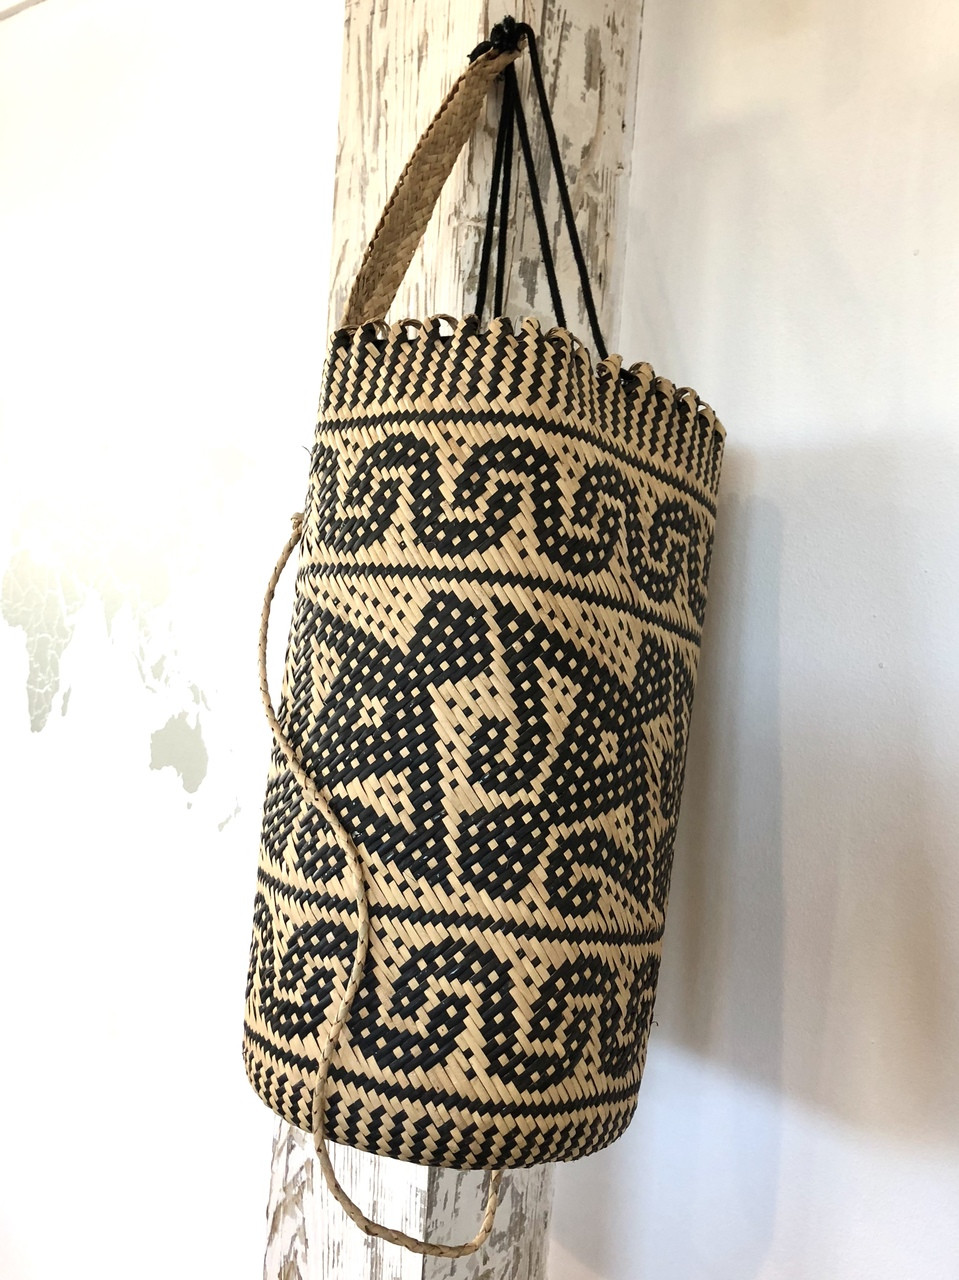 Tribal Rattan Backpack Kalimantan Borneo Ethnic Origin Company